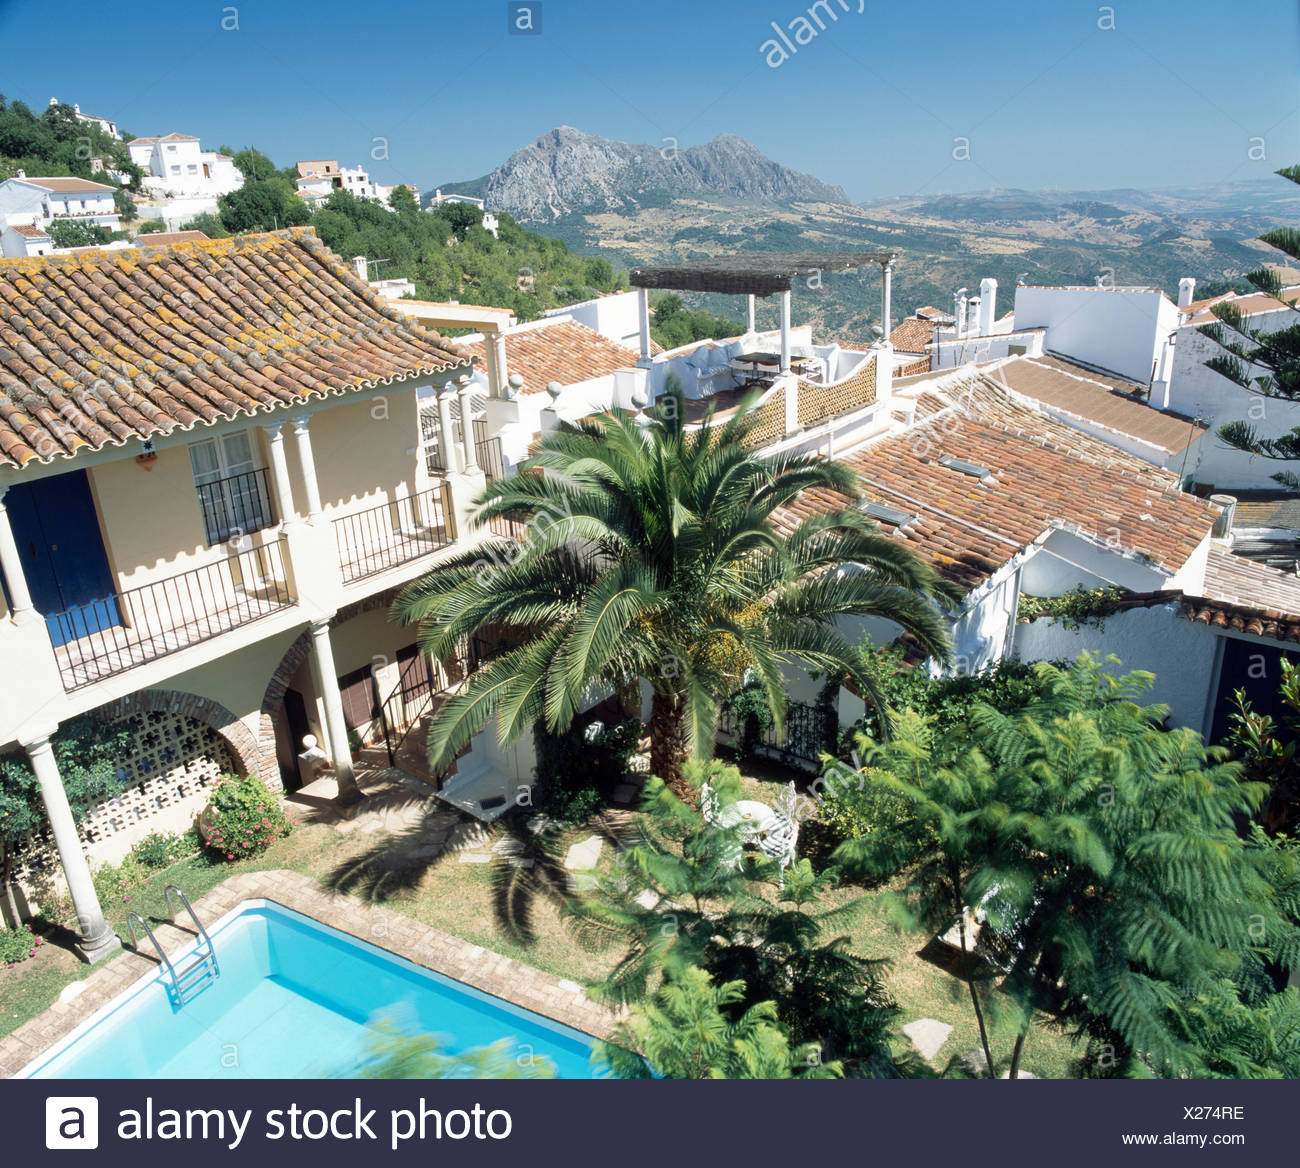 Birdseye view of palm trees in garden of Spanish villa - Stock Image